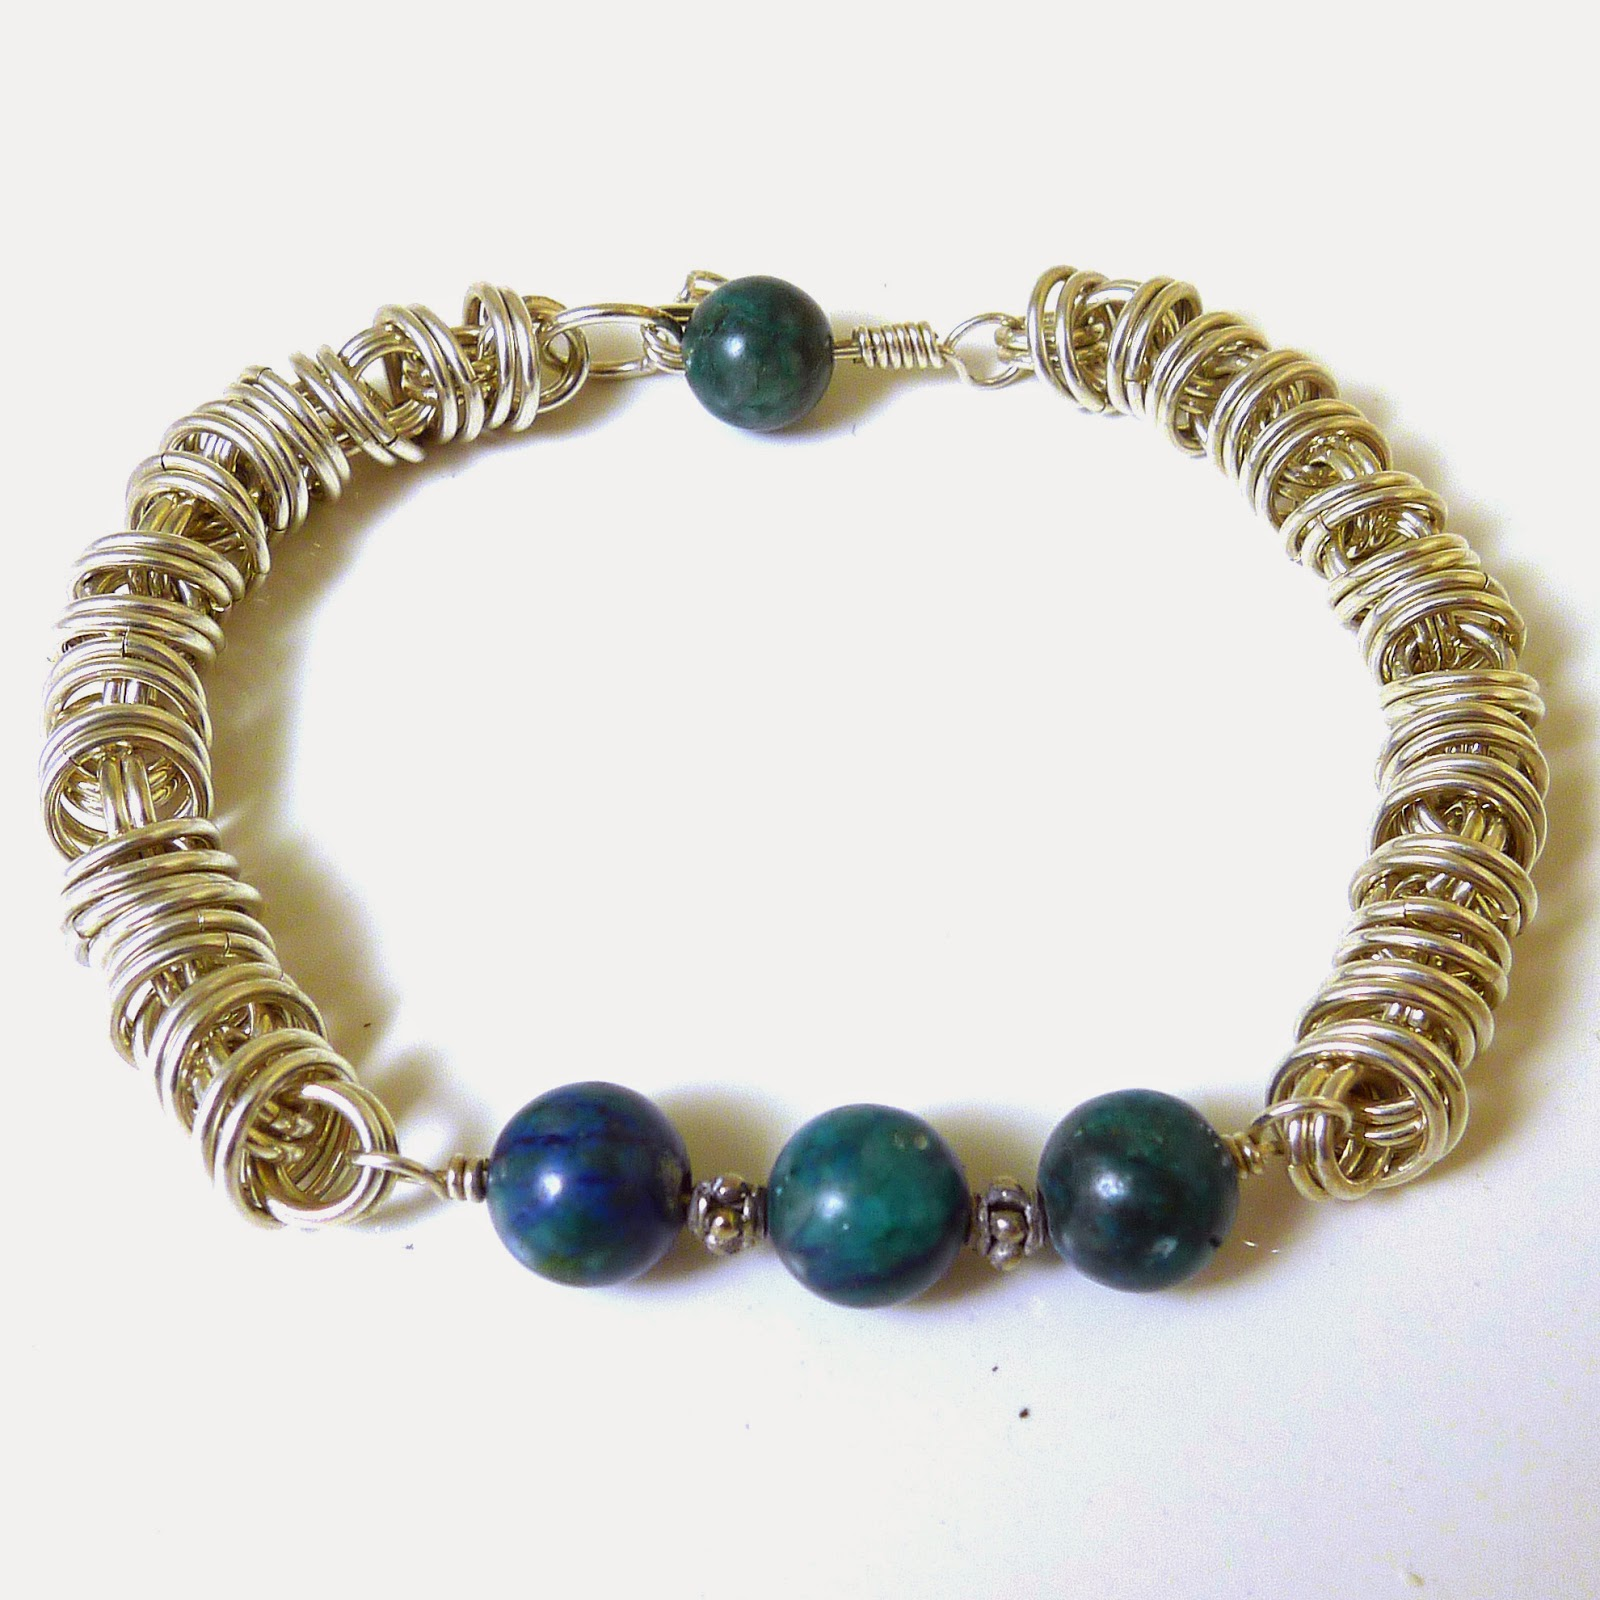 http://www.shazzabethcreations.co.nz/#!product/prd1/2461425451/chrysocolla-orbital-sterling-chainmaille-bracelet